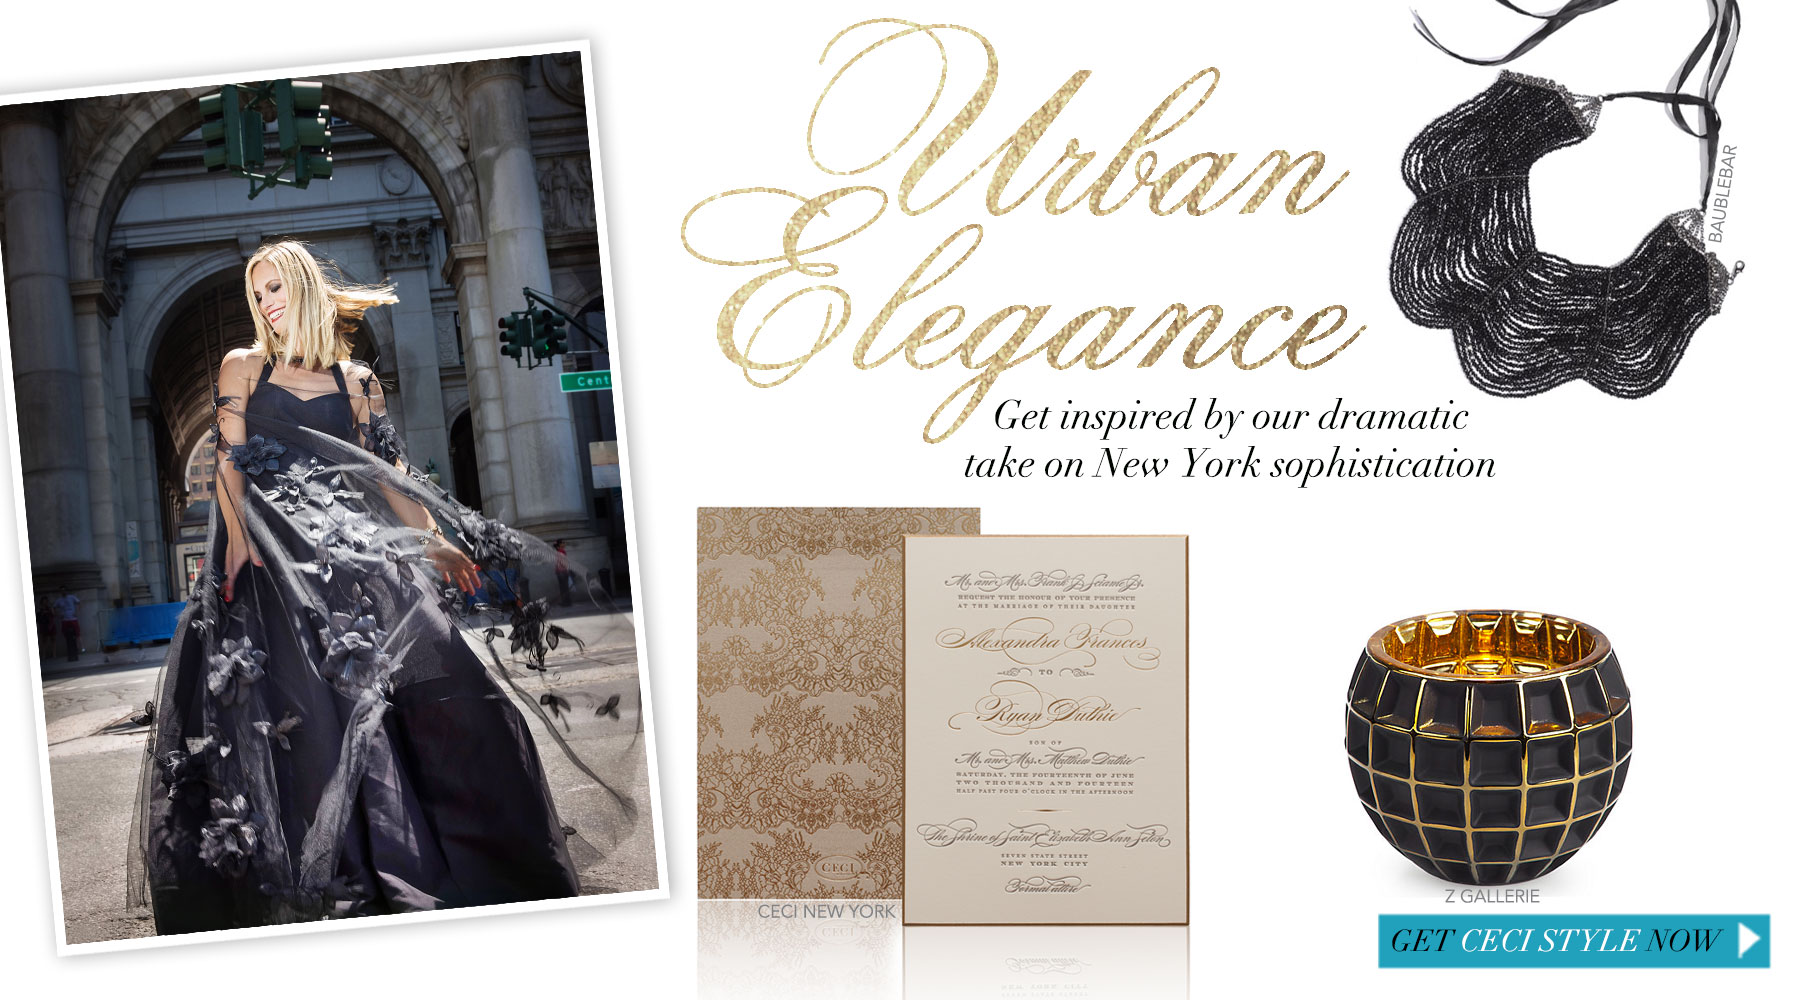 Urban Elegance - Get inspired by our dramatic take on New York sophistication